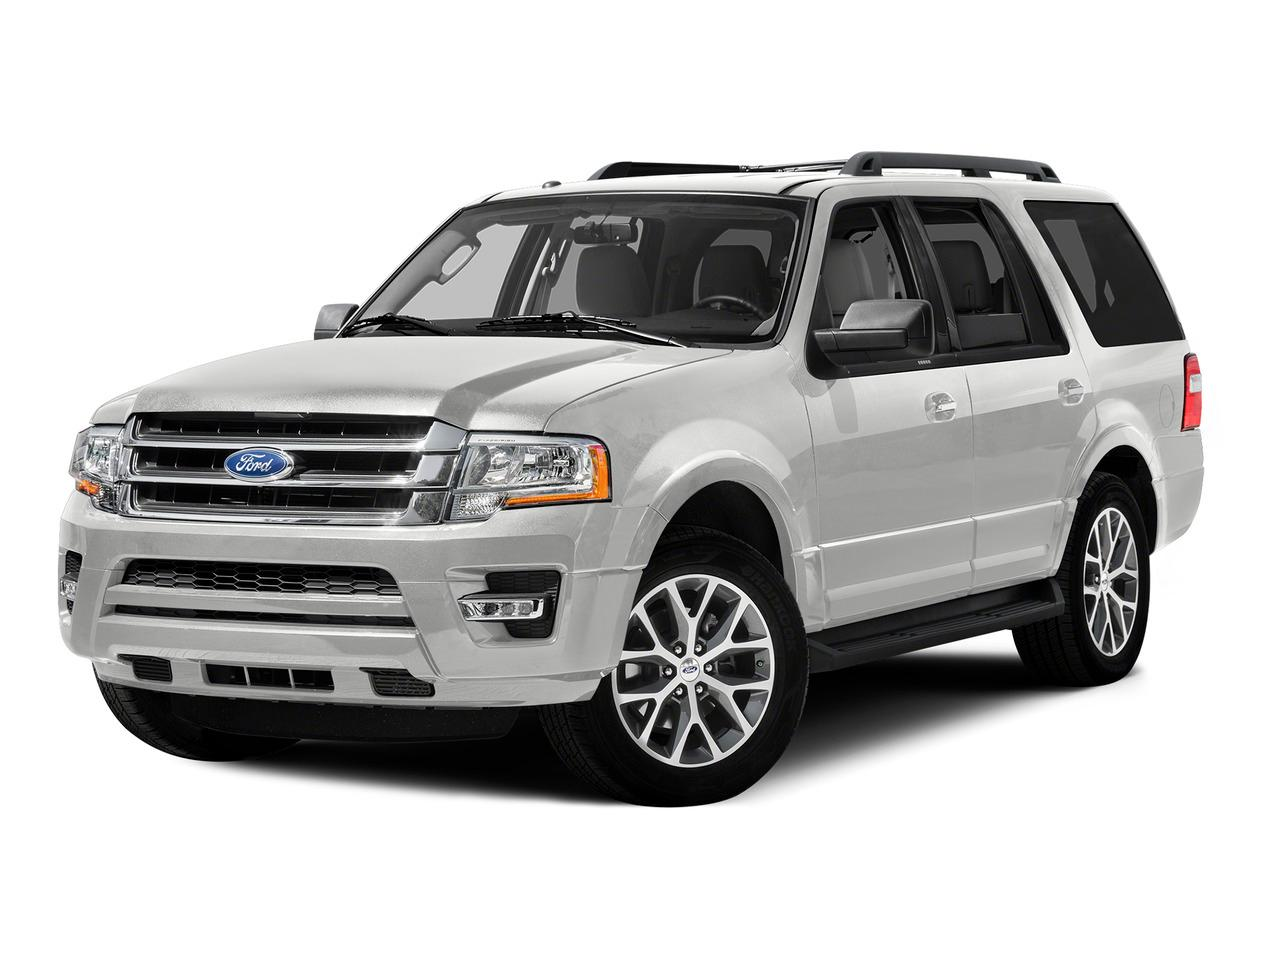 2015 Ford Expedition Vehicle Photo in Salisbury, MD 21801